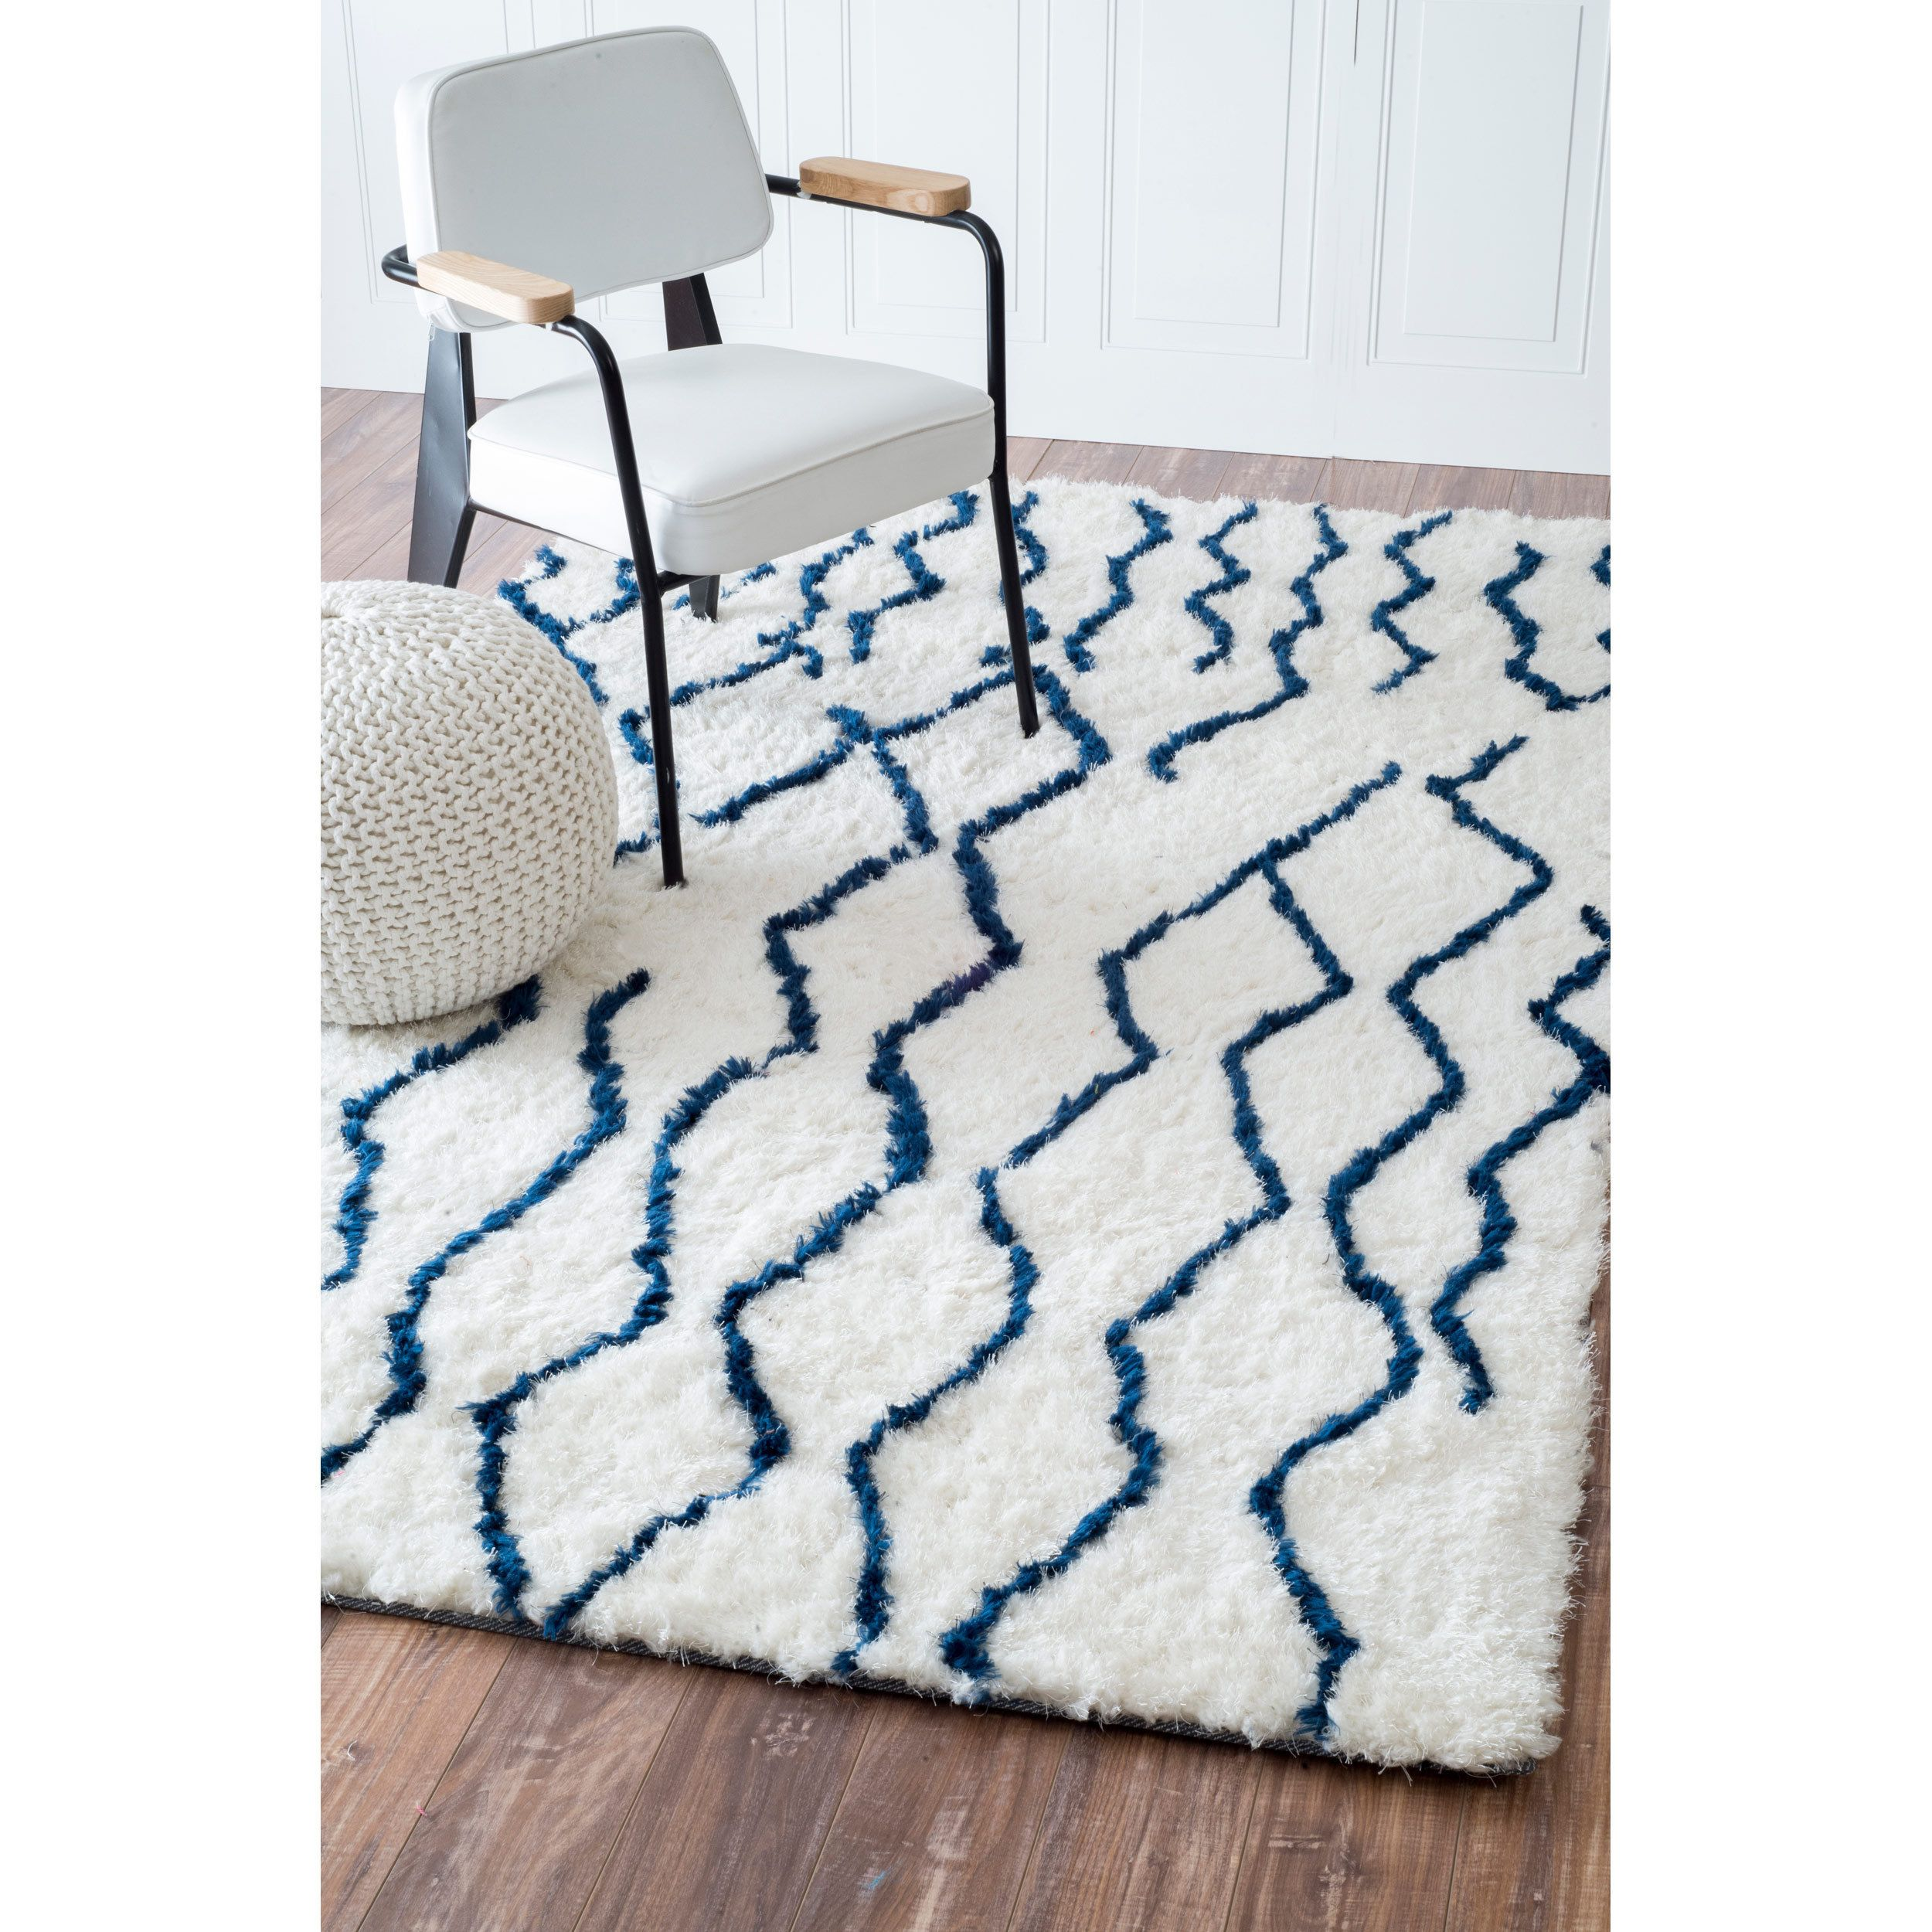 Soft and plush this cozy Moroccan trellis rug adds warmth and